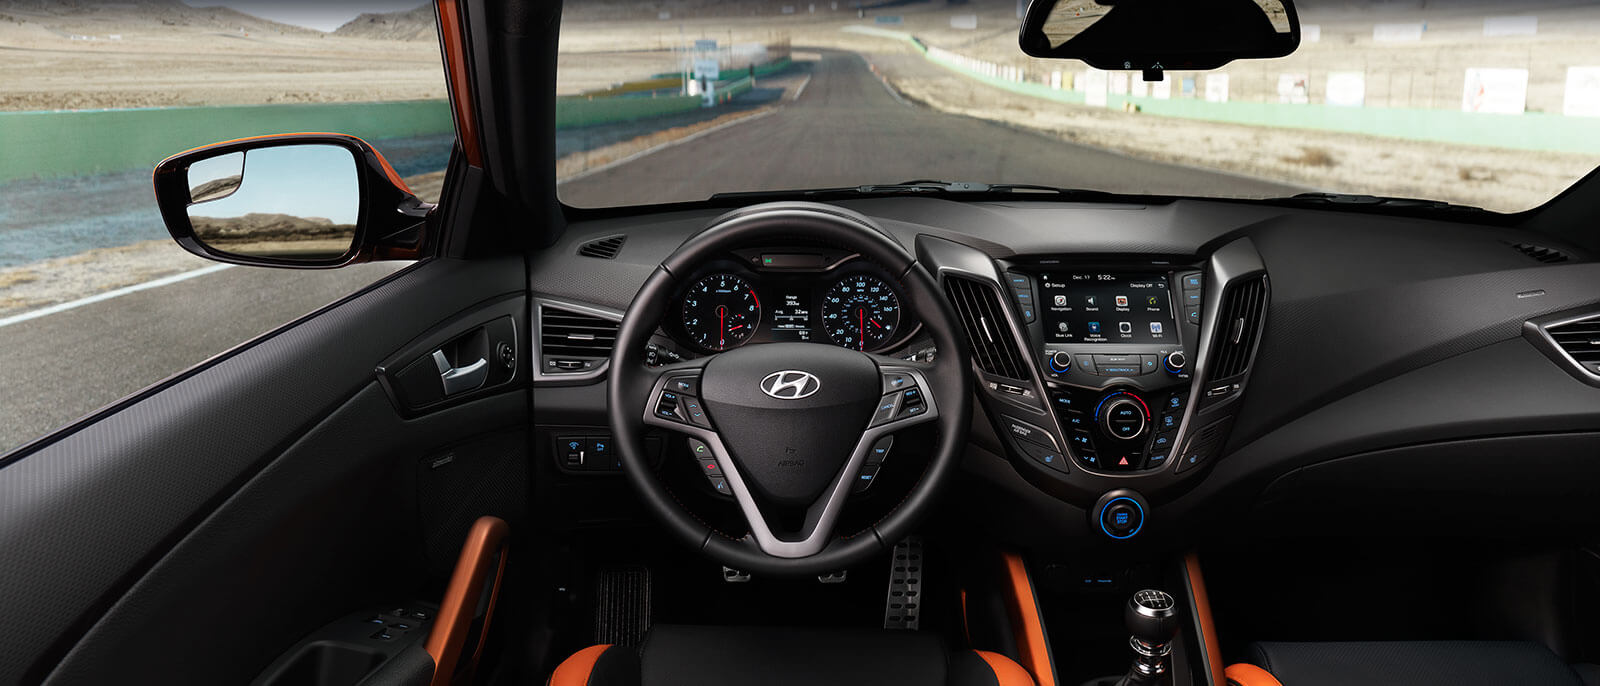 2016 Veloster Turbo Model Info Price Safety Features